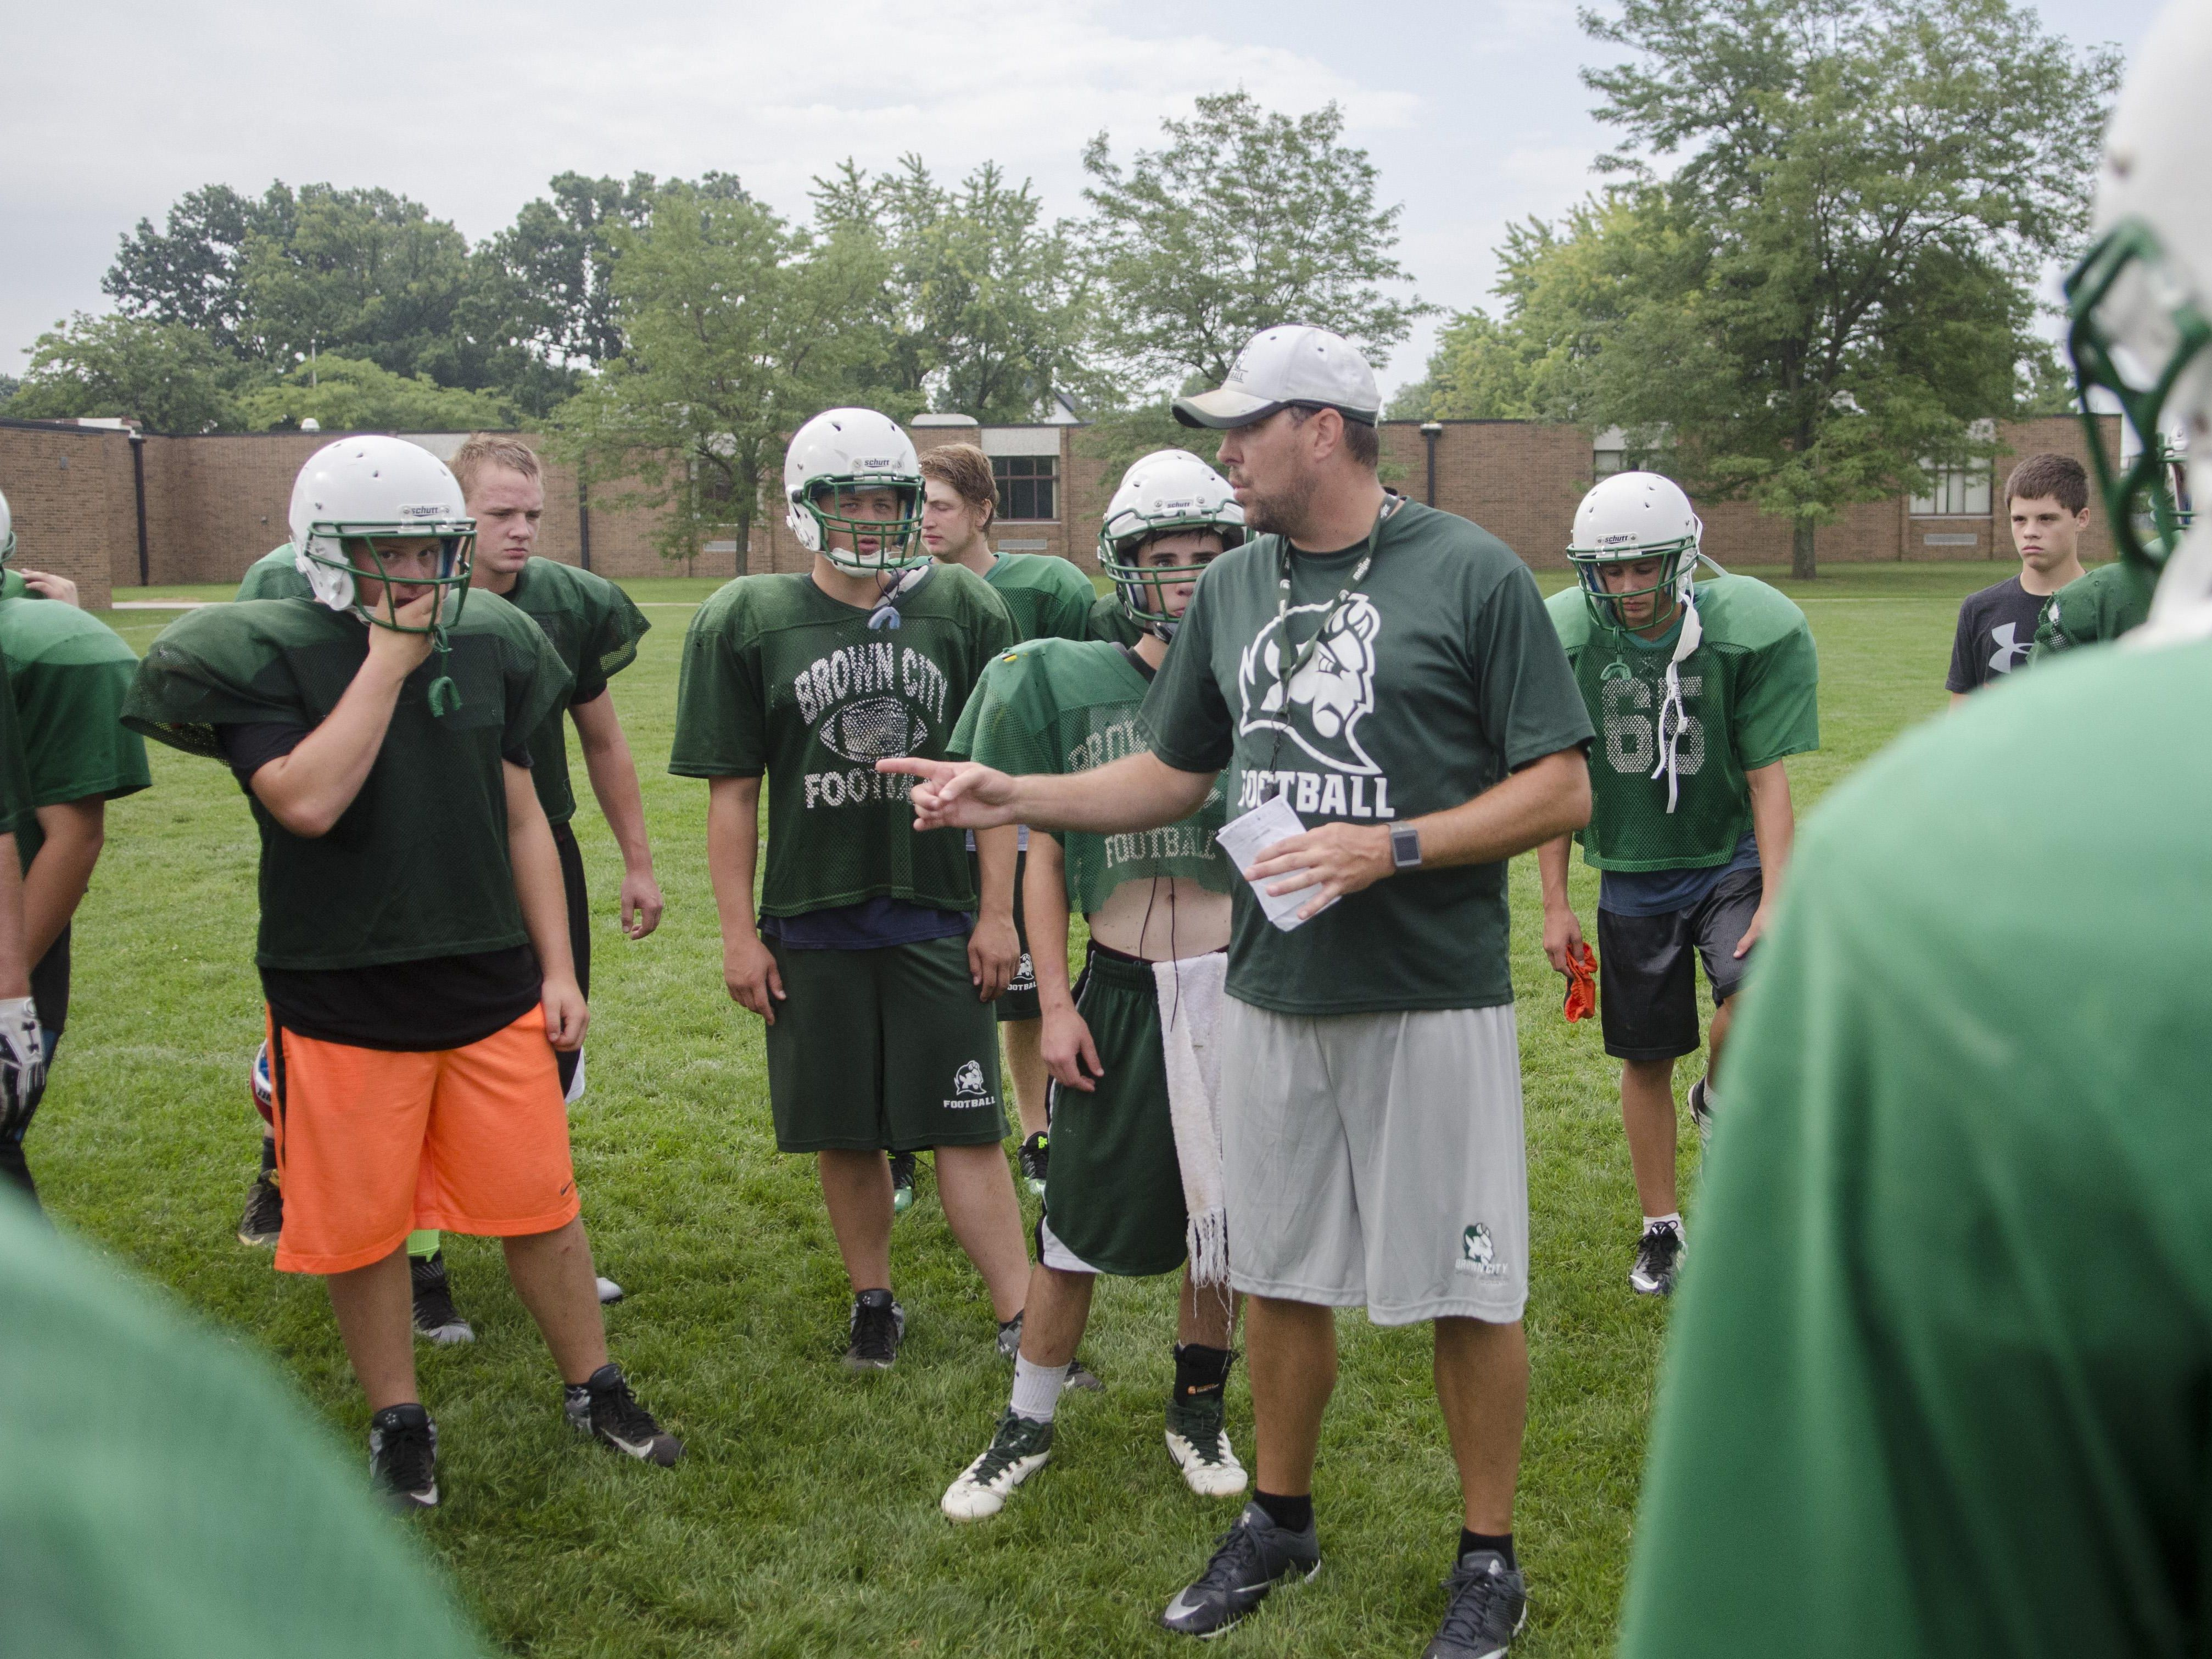 Brown City coach Aren Cooper talks to his players Thursday, Aug. 11, 2016 during their football practice at Brown City High School.